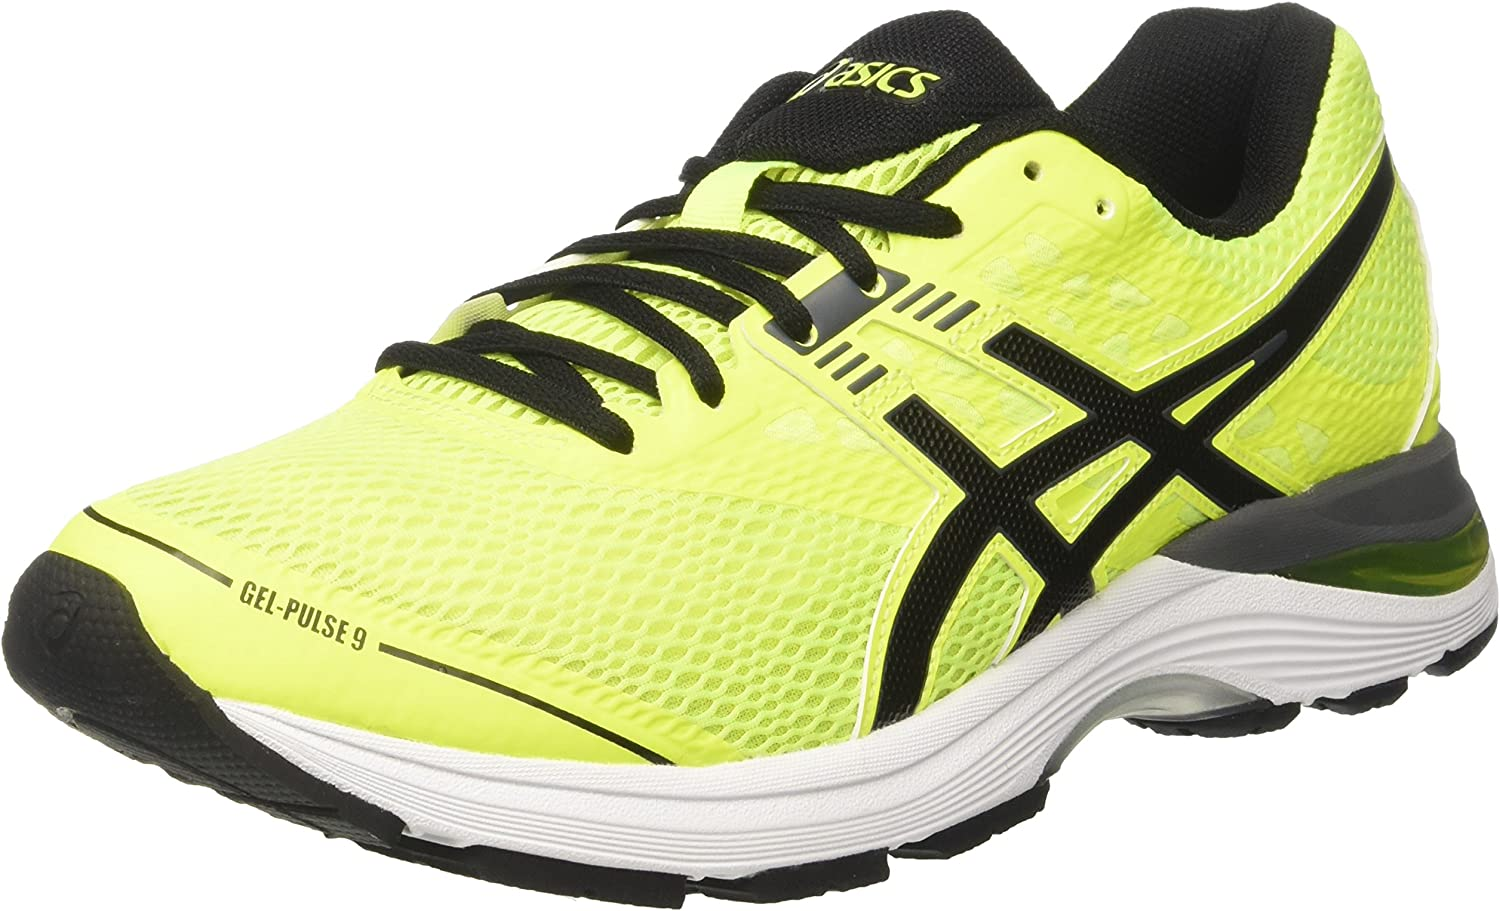 ASICS Gel-Pulse 9 Mens Running Trainers T7D3N Sneakers Shoes